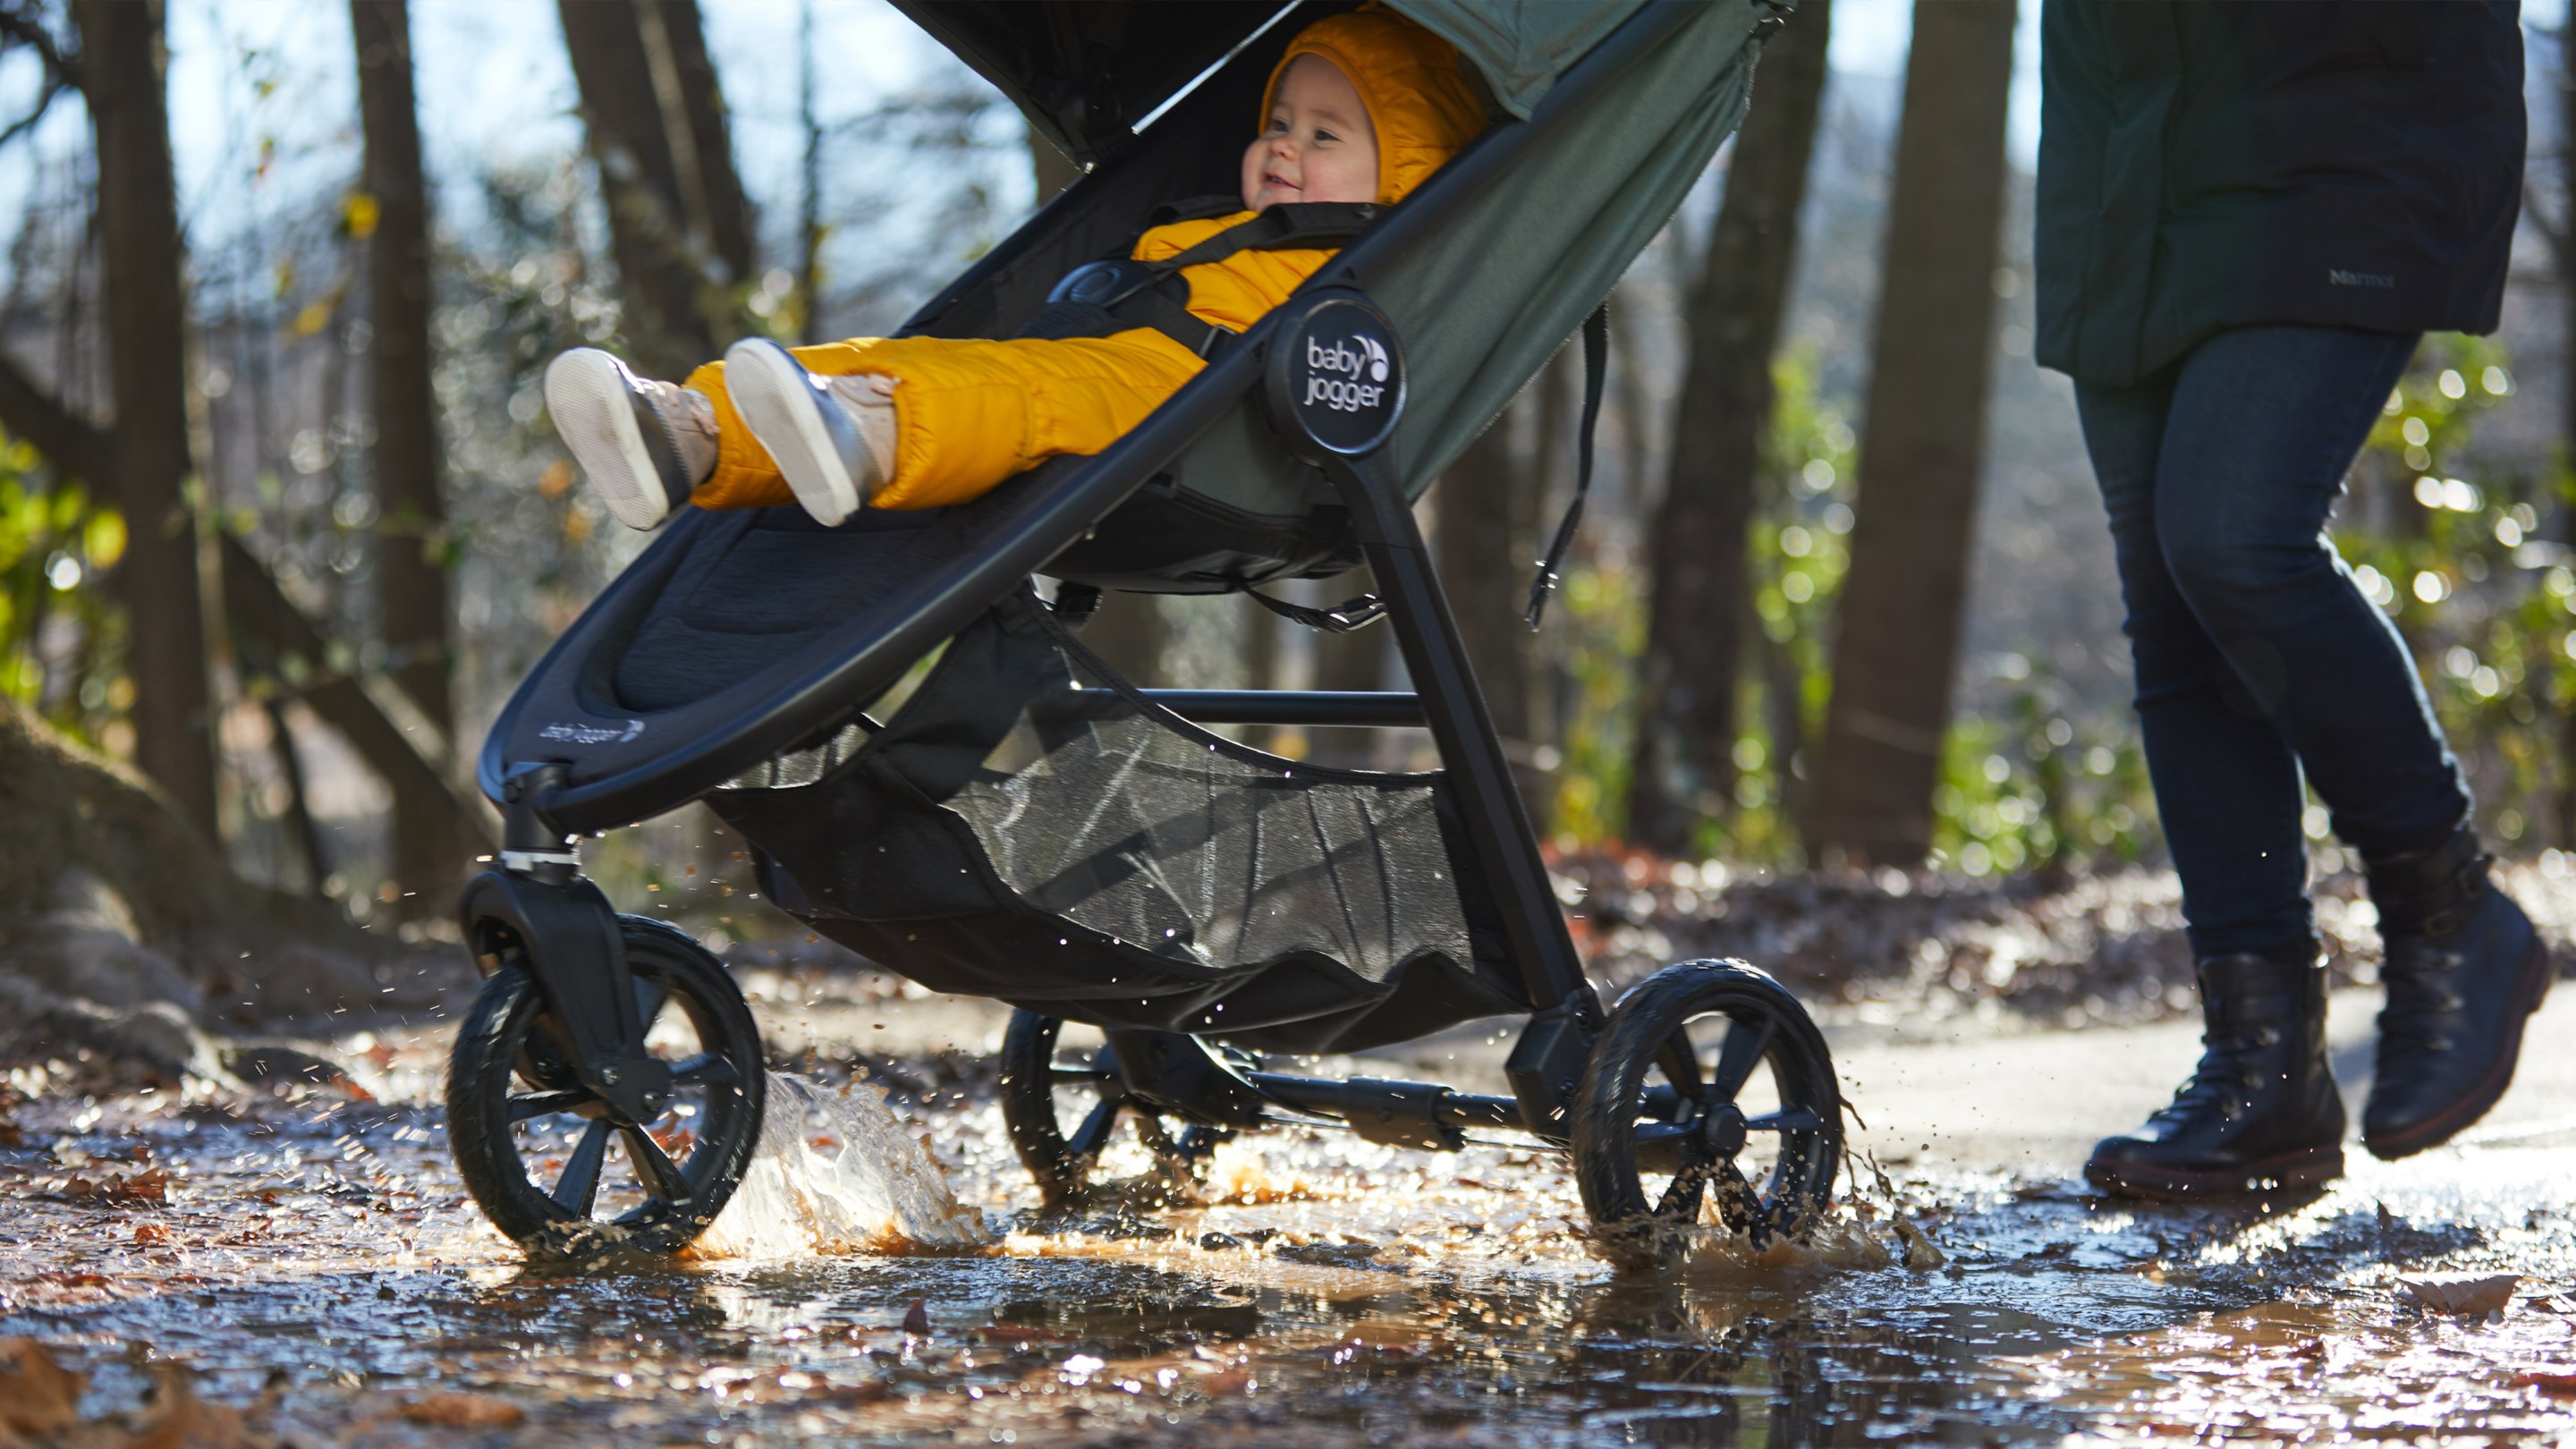 stroller going through mud and leaves in fall season